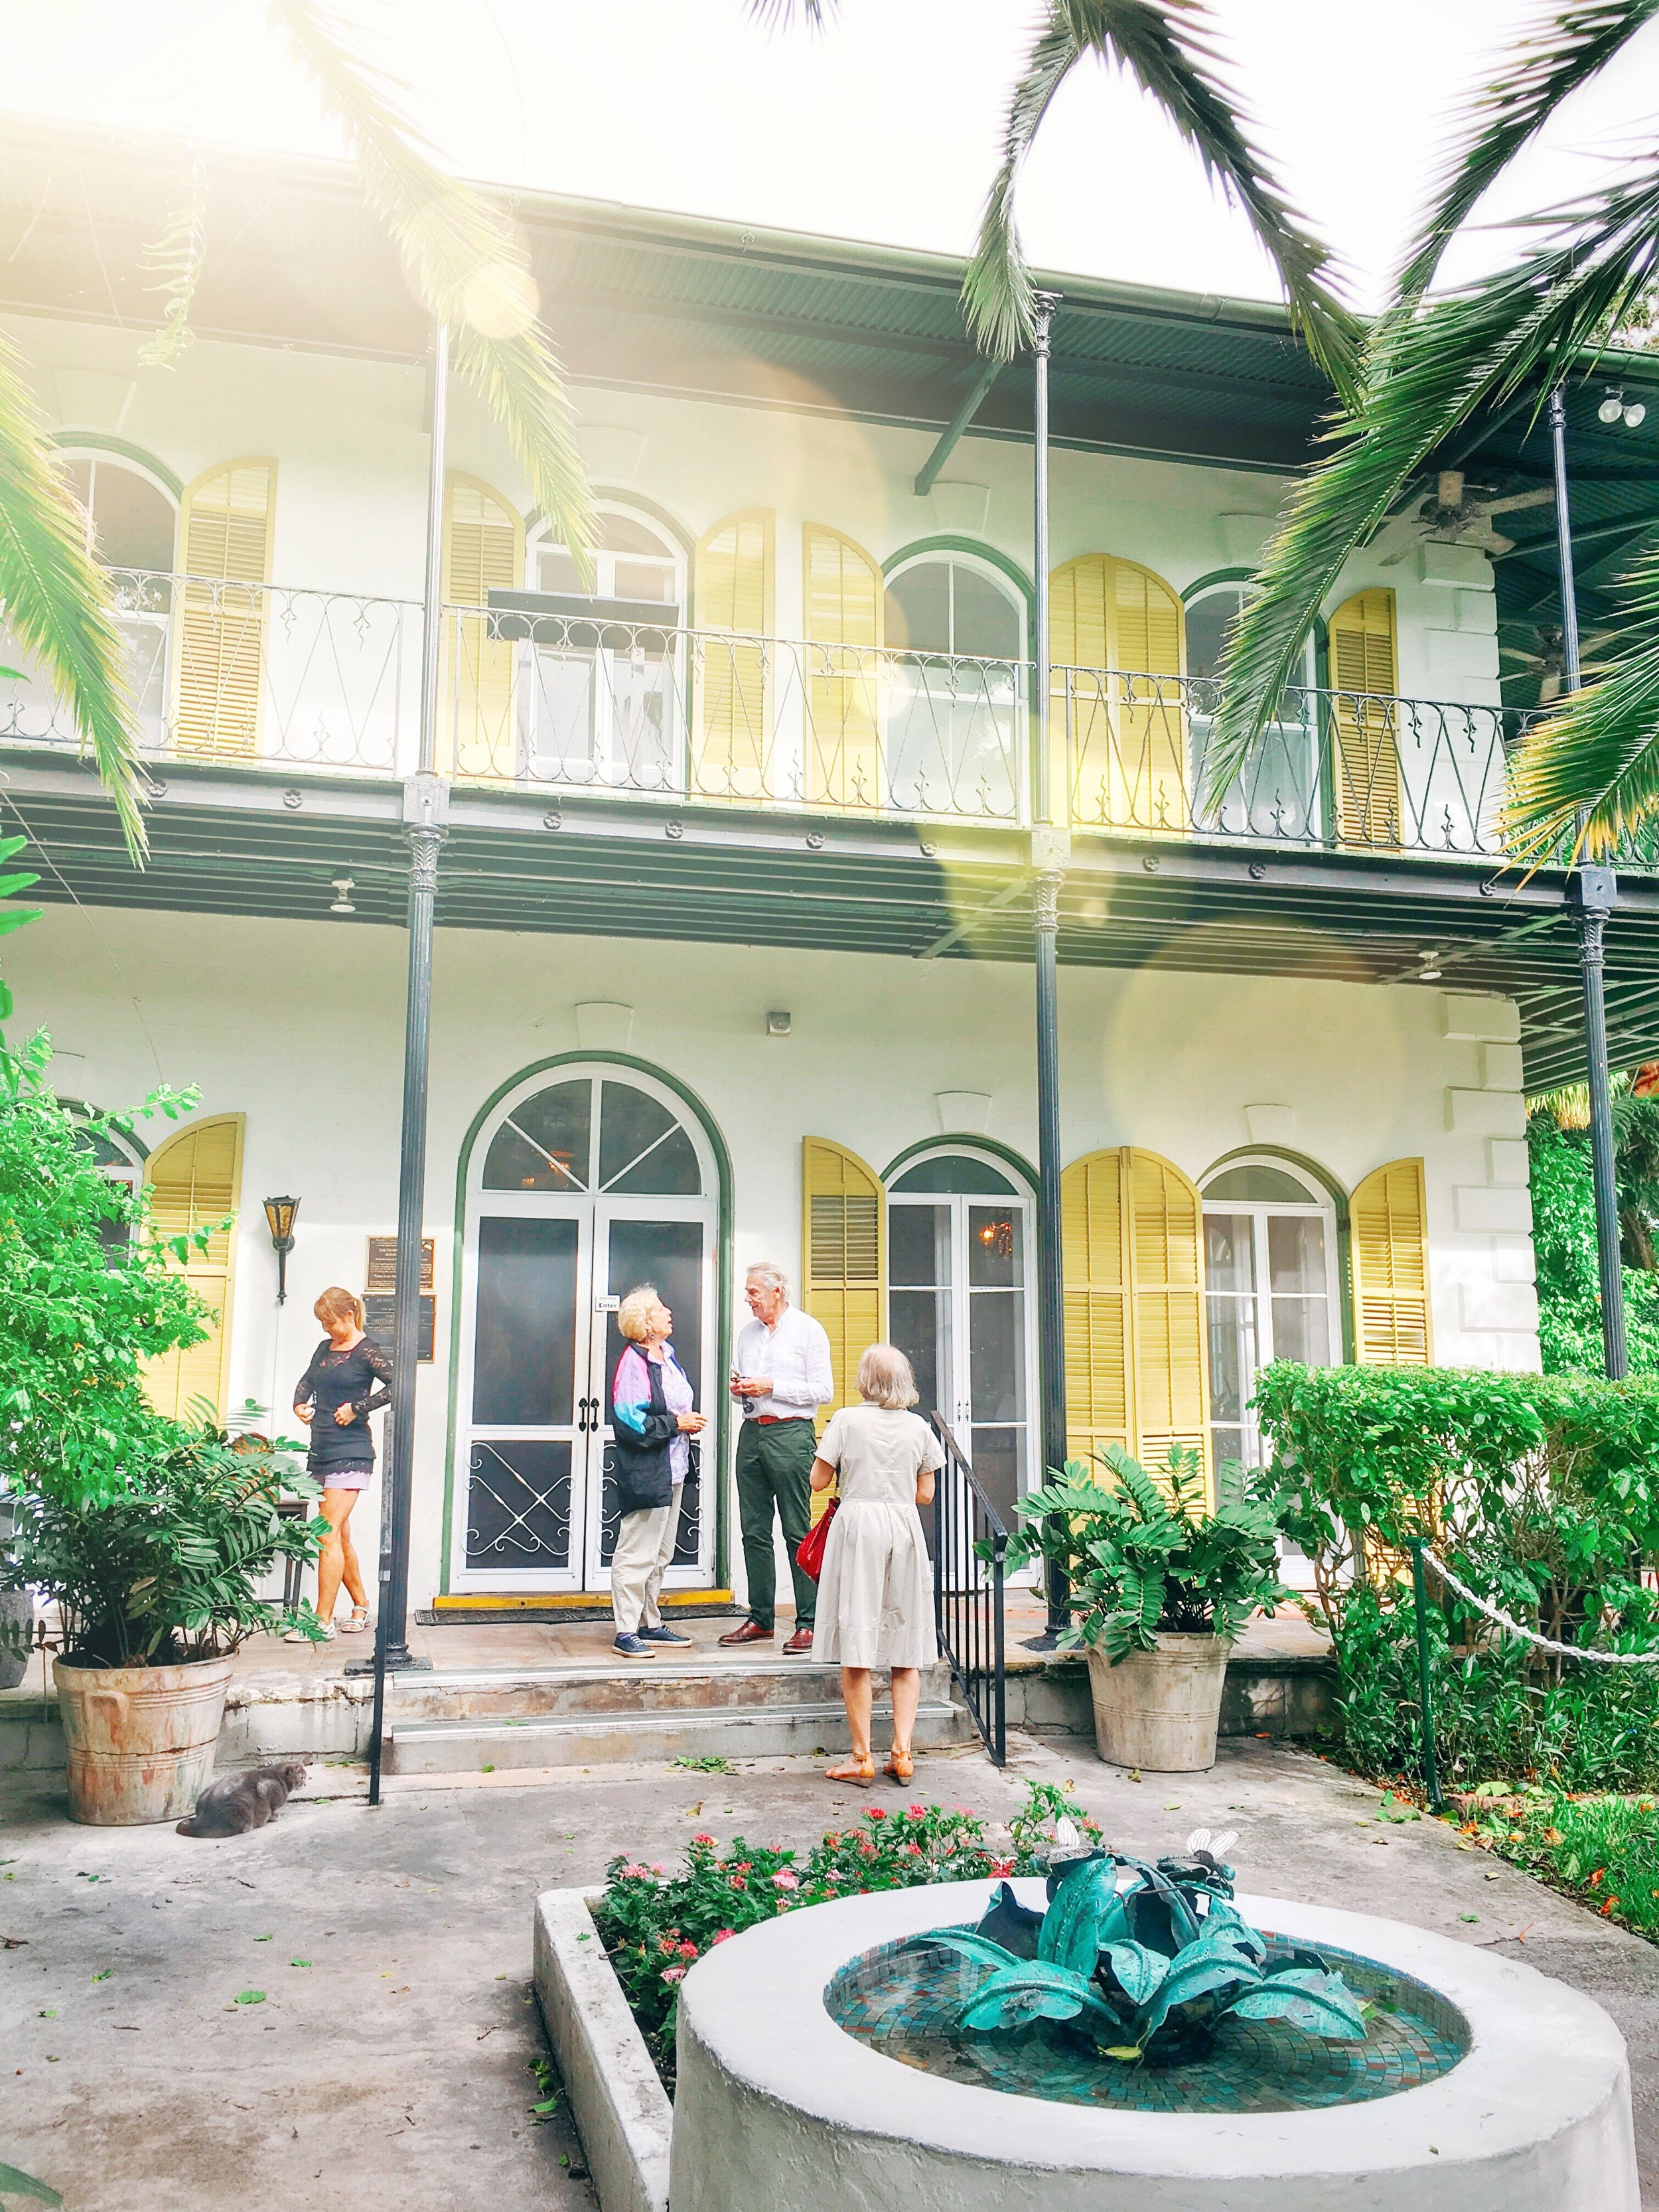 Visit the Hemingway House in Key West